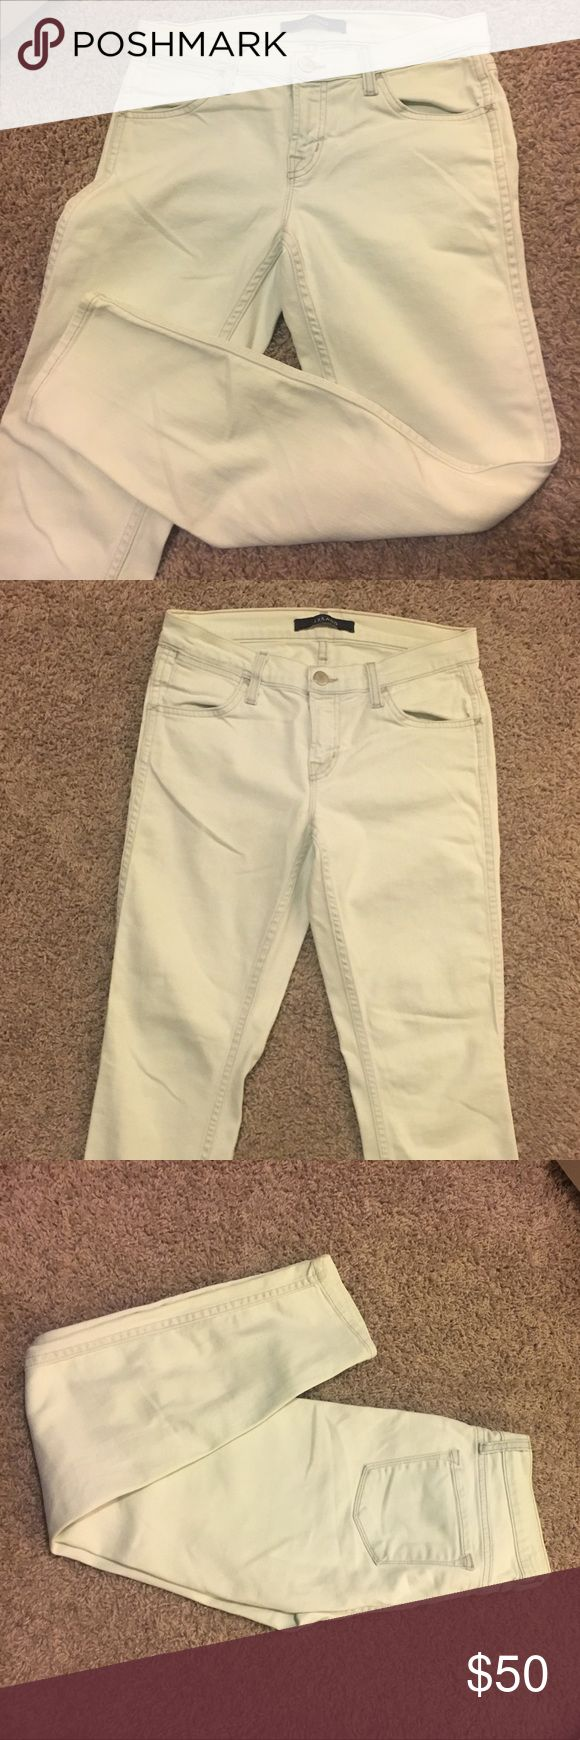 Mint skinny capri jeans J. Brand Mint capri jeans. Gently worn. Great condition. J. Brand Jeans Ankle & Cropped